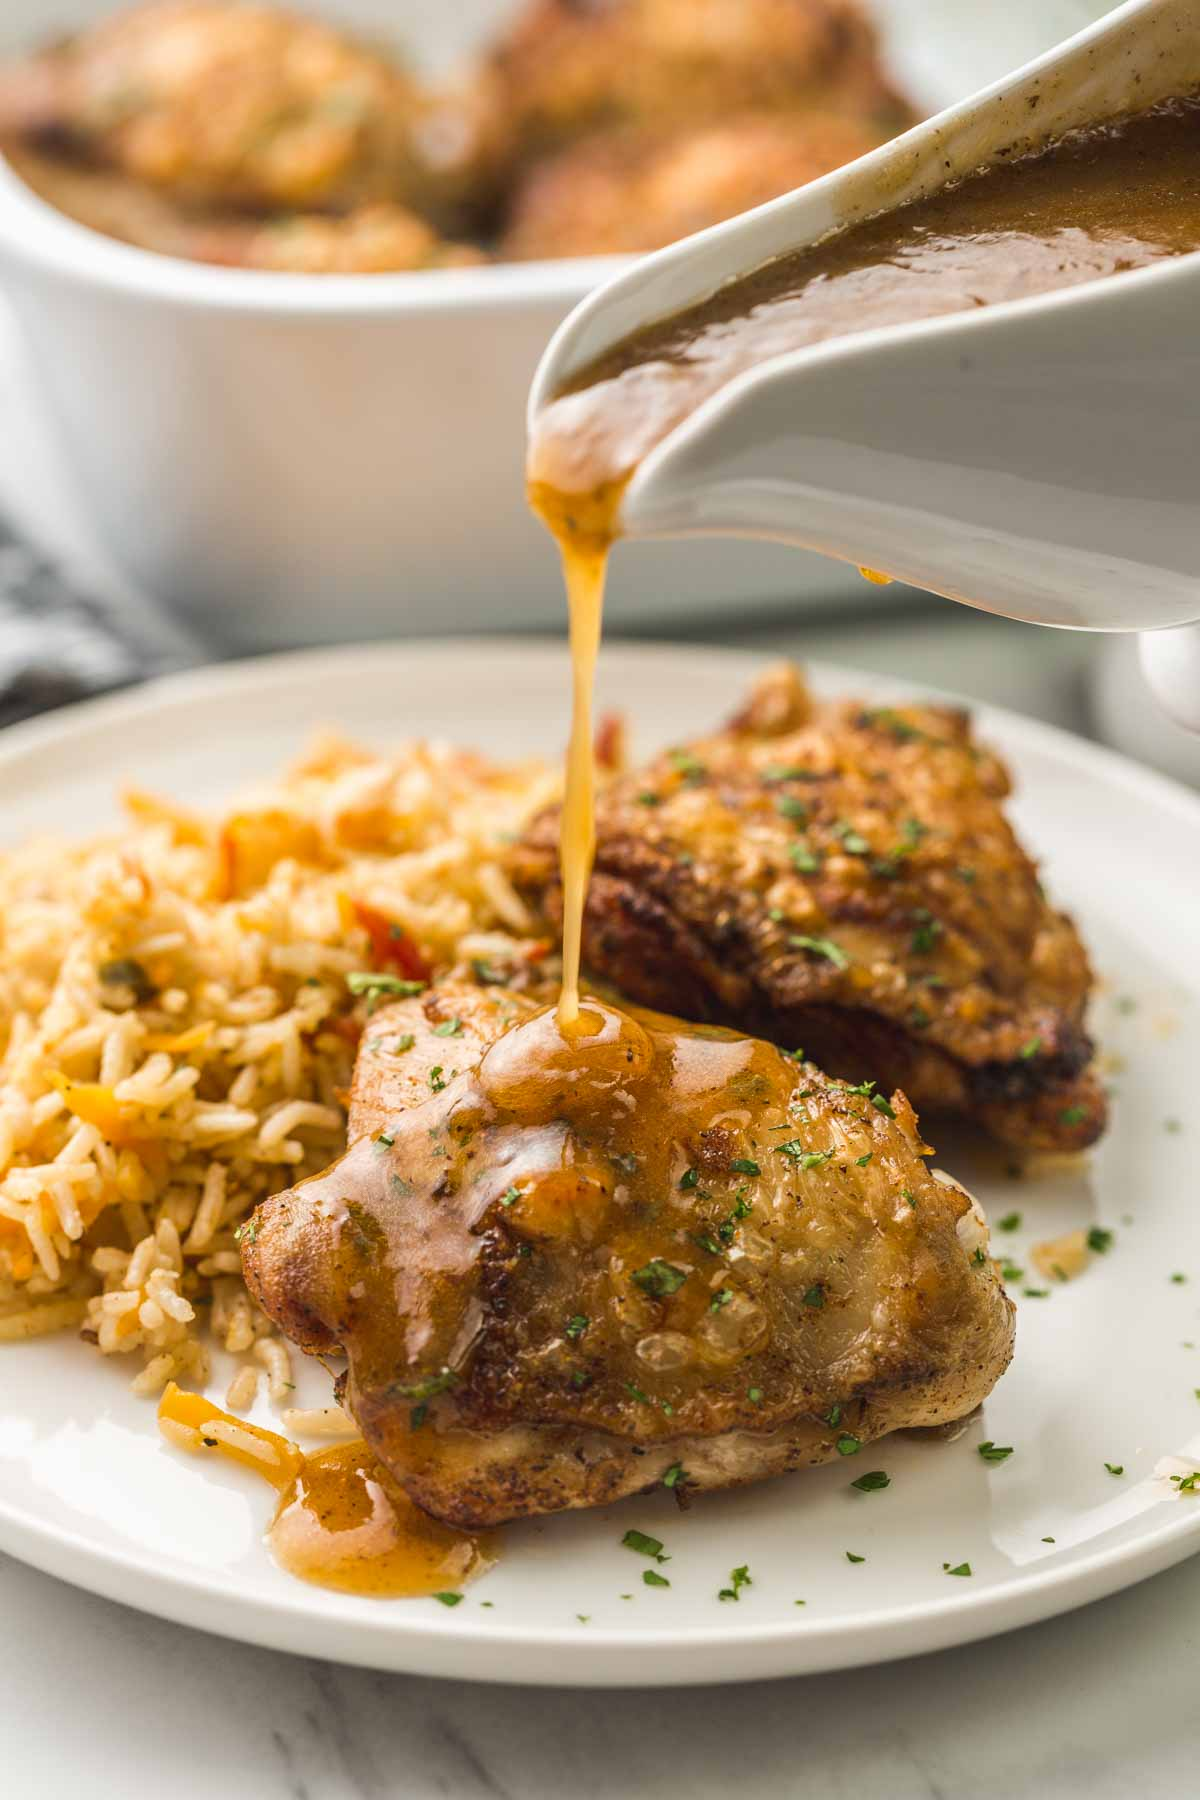 Pouring gravy over the chicken thighs